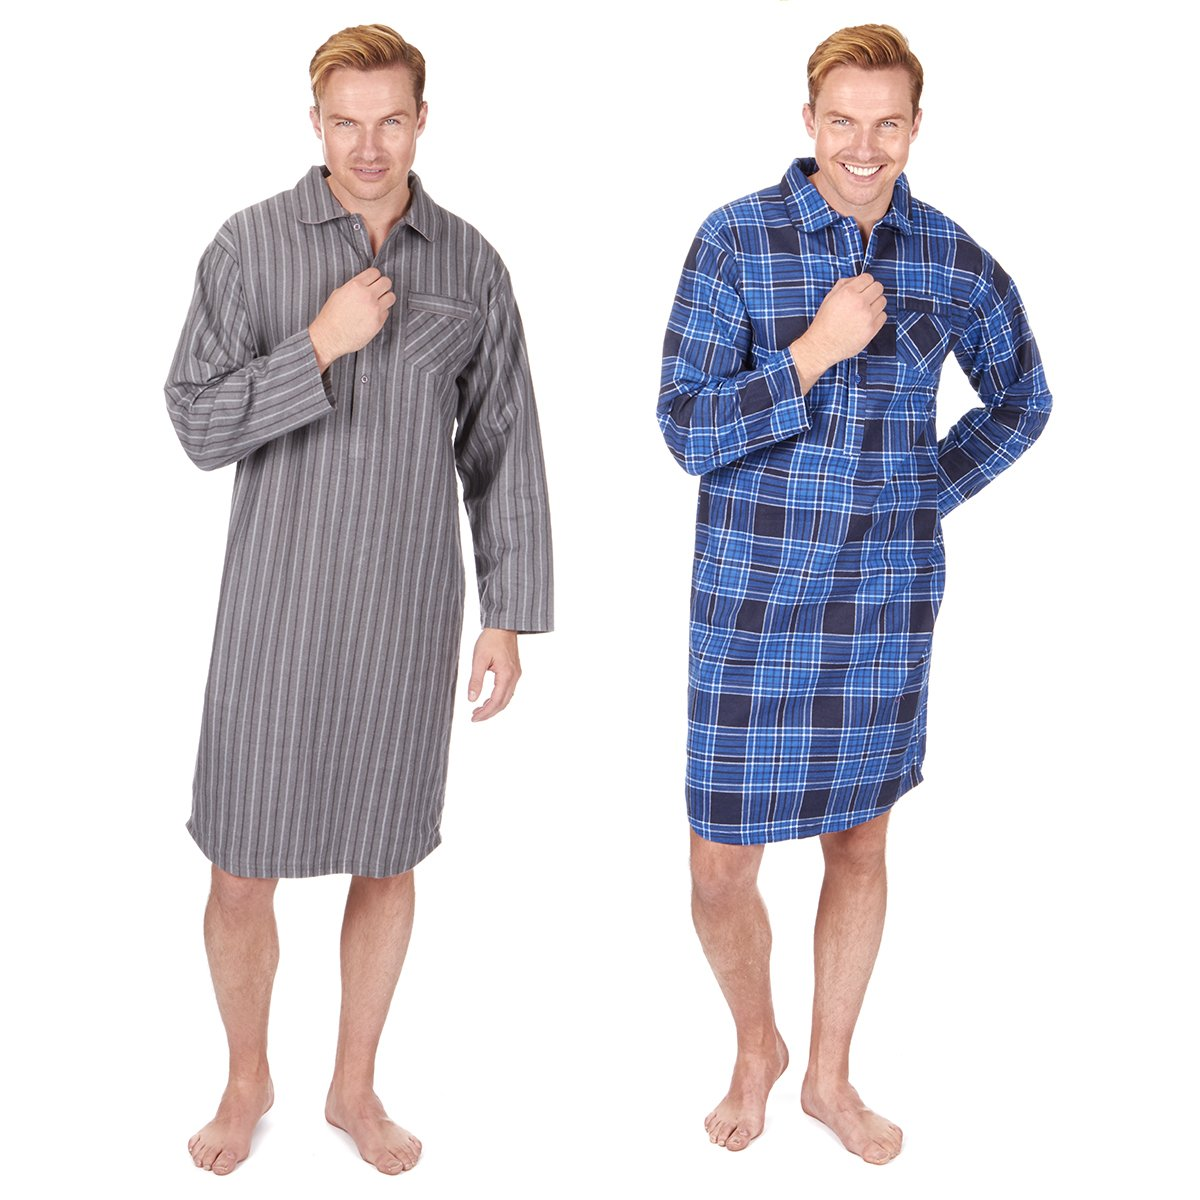 6ccd3926fb CARGOBAY Mens Striped Long Flannel Nightshirt  Amazon.co.uk  Clothing